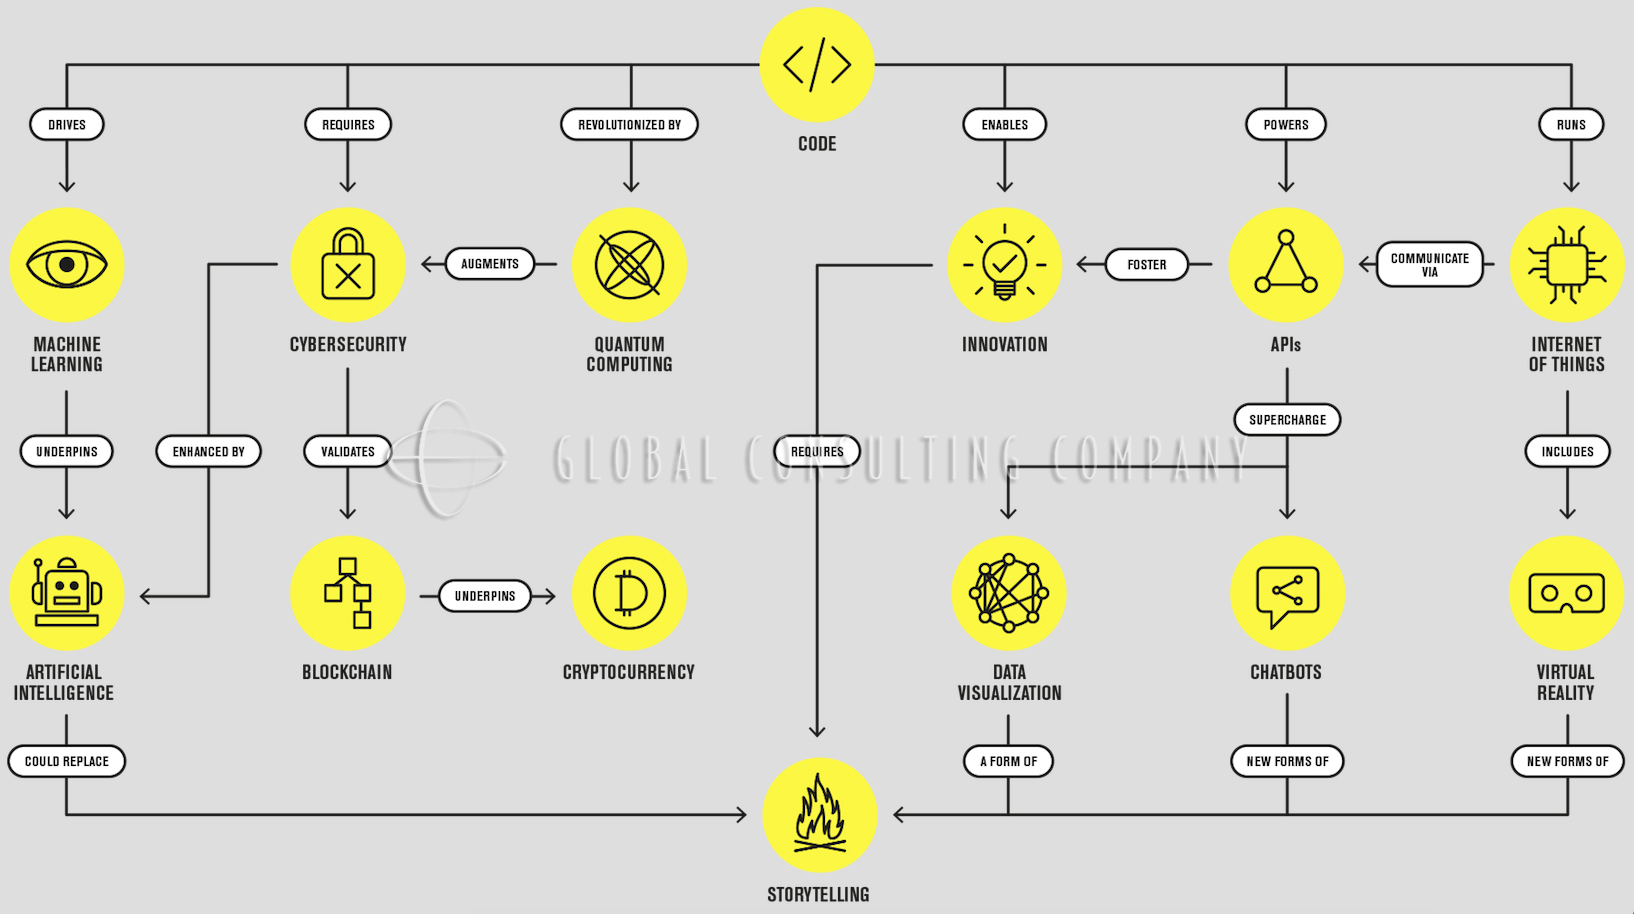 Global-Consulting-Companys-Ecosystem-of-Digitization